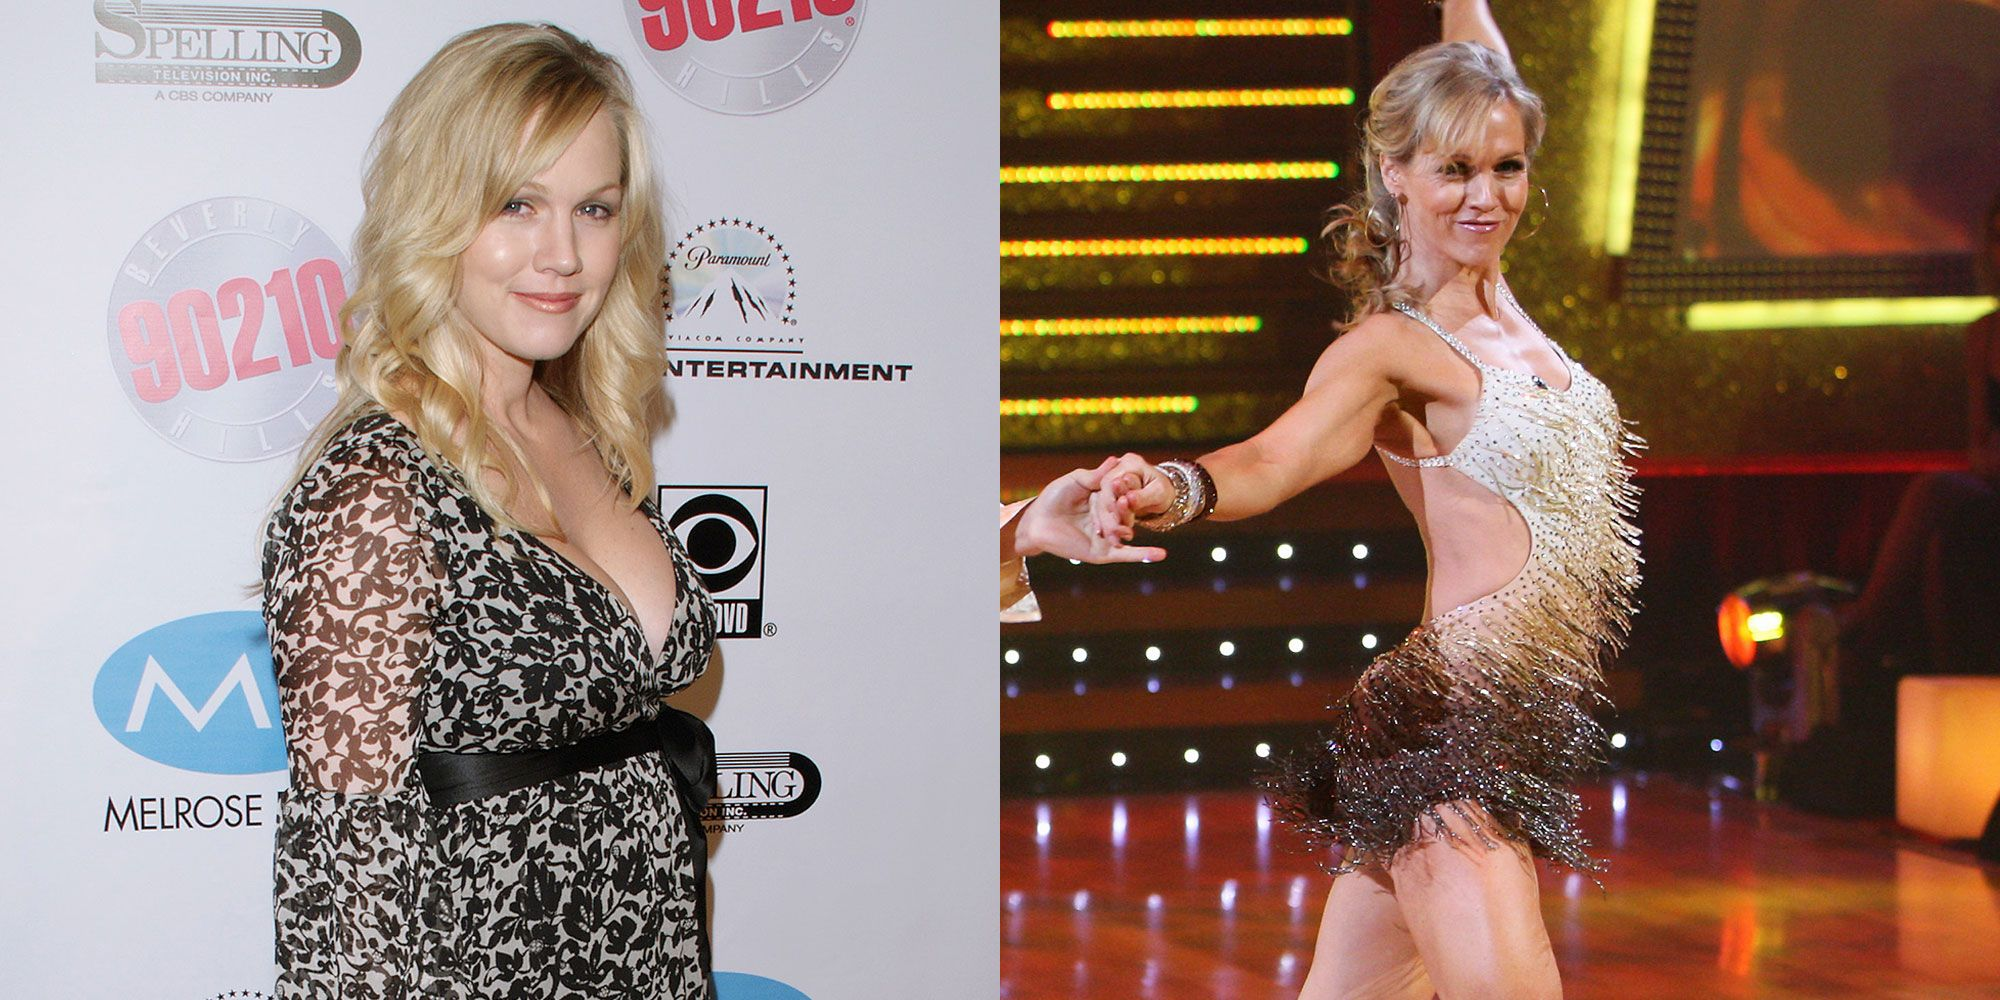 20 'Dancing With The Stars' Contestants Who Lost Weight On The Show